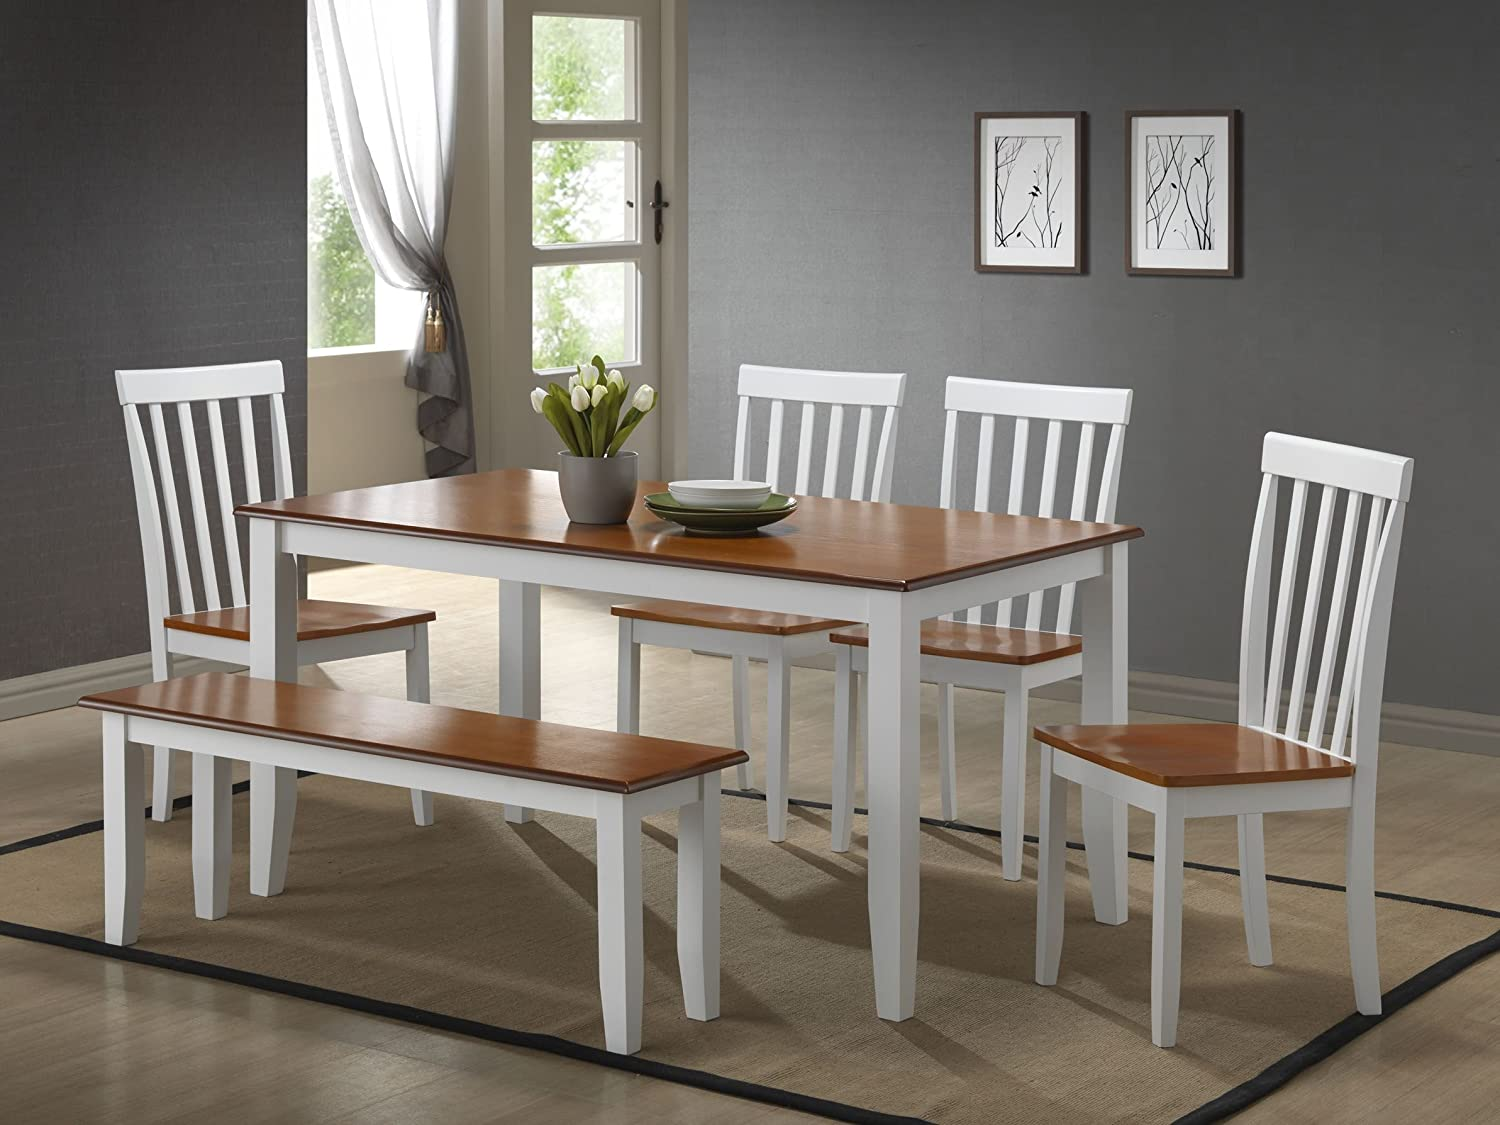 White dining room table - Amazon Com Boraam 22034 Bloomington 6 Piece Dining Room Set White Honey Oak Table Chair Sets